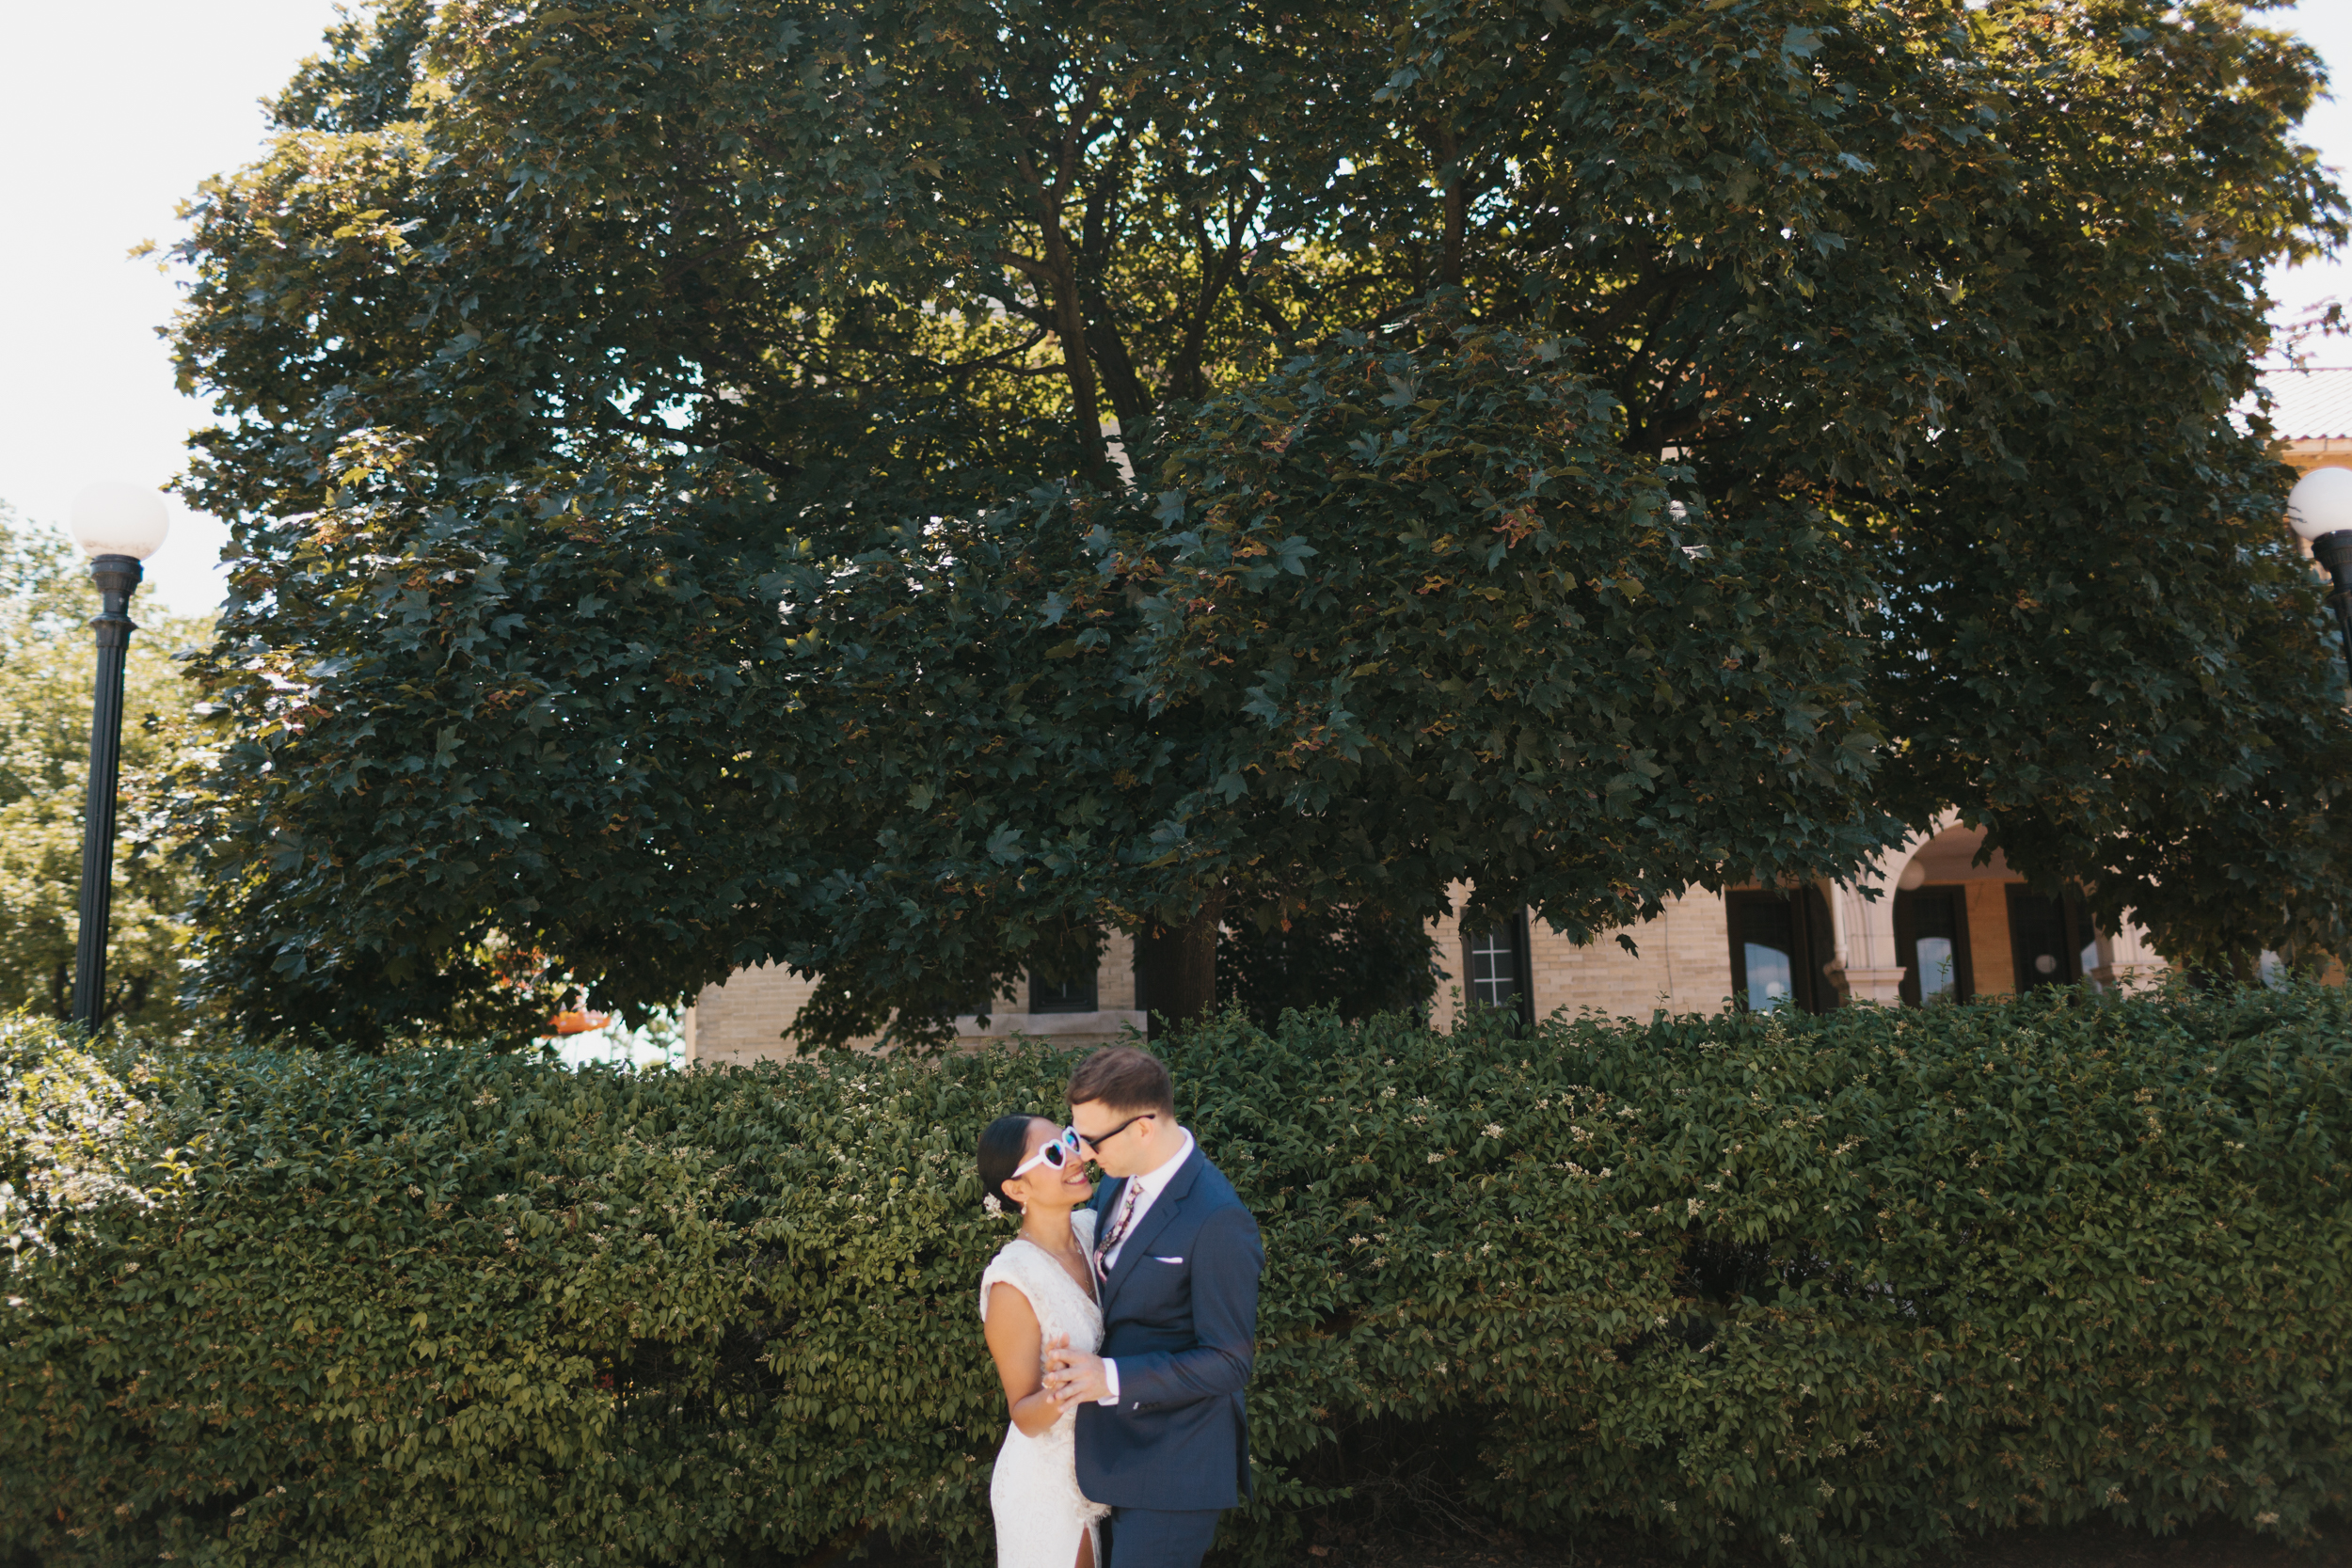 Detroit Lifestyle Wedding Photographer Mae Stier-016.jpg